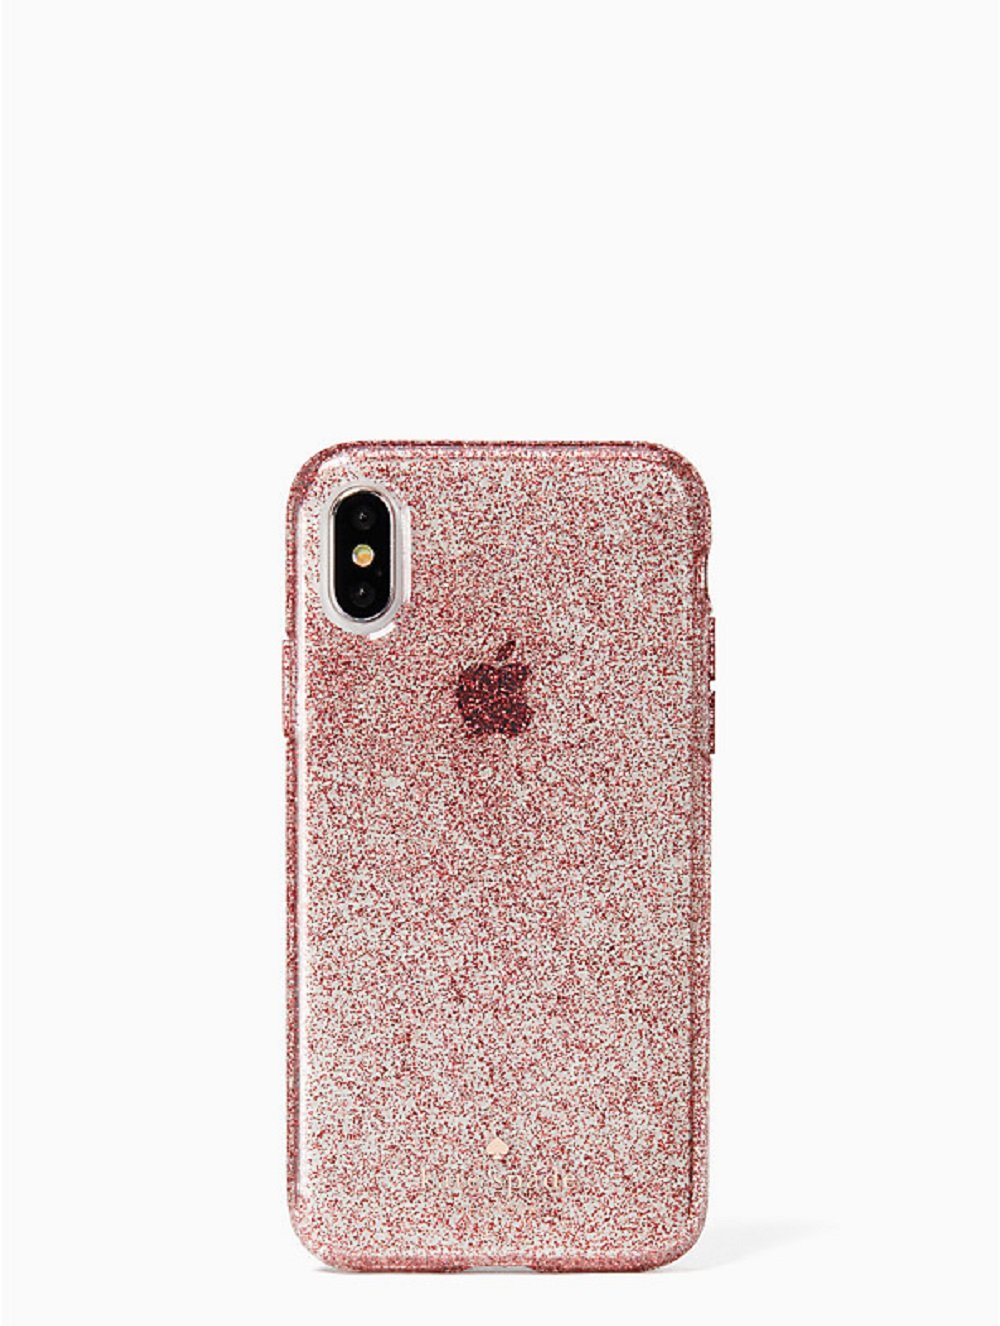 Kate Spade New York Flexible Tinted Glitter Case for iPhone X, Rose Gold